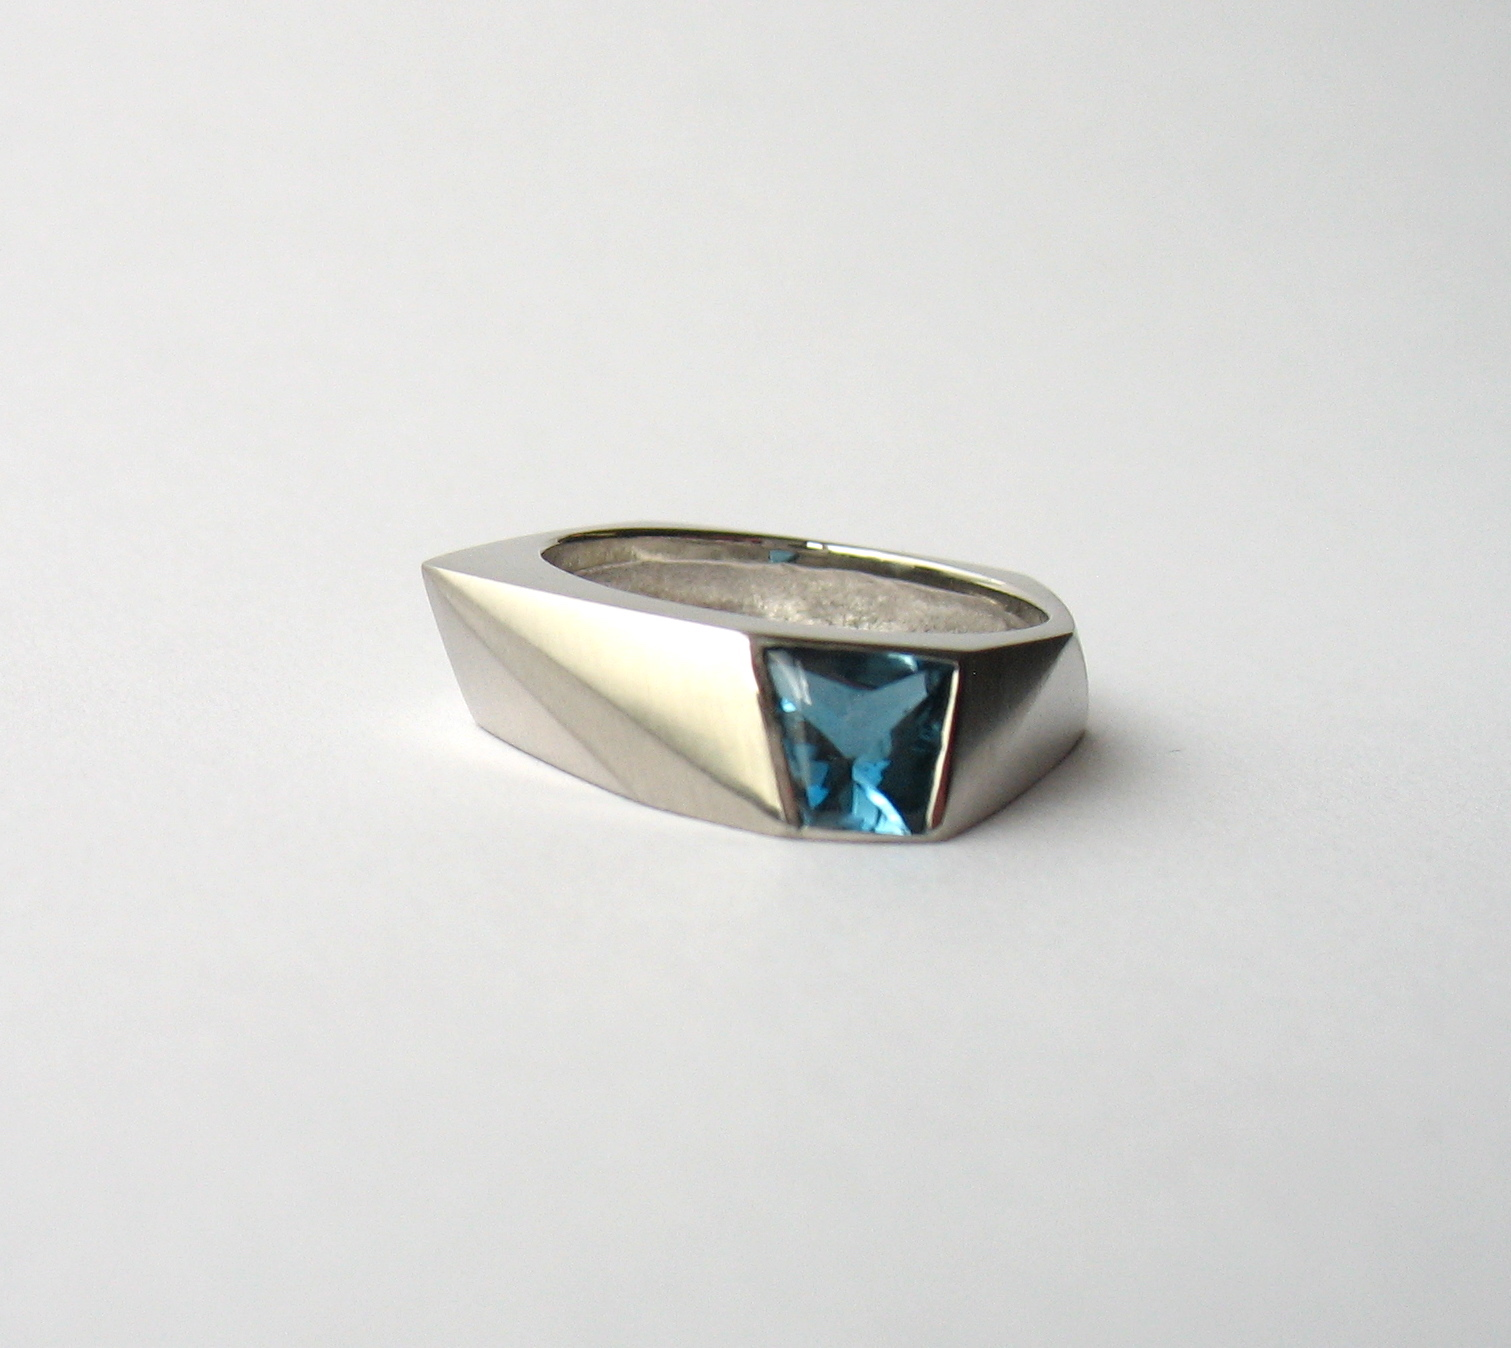 Blue Topaz and Palladium Ring. Image: Courtesy of Melanie Eddy